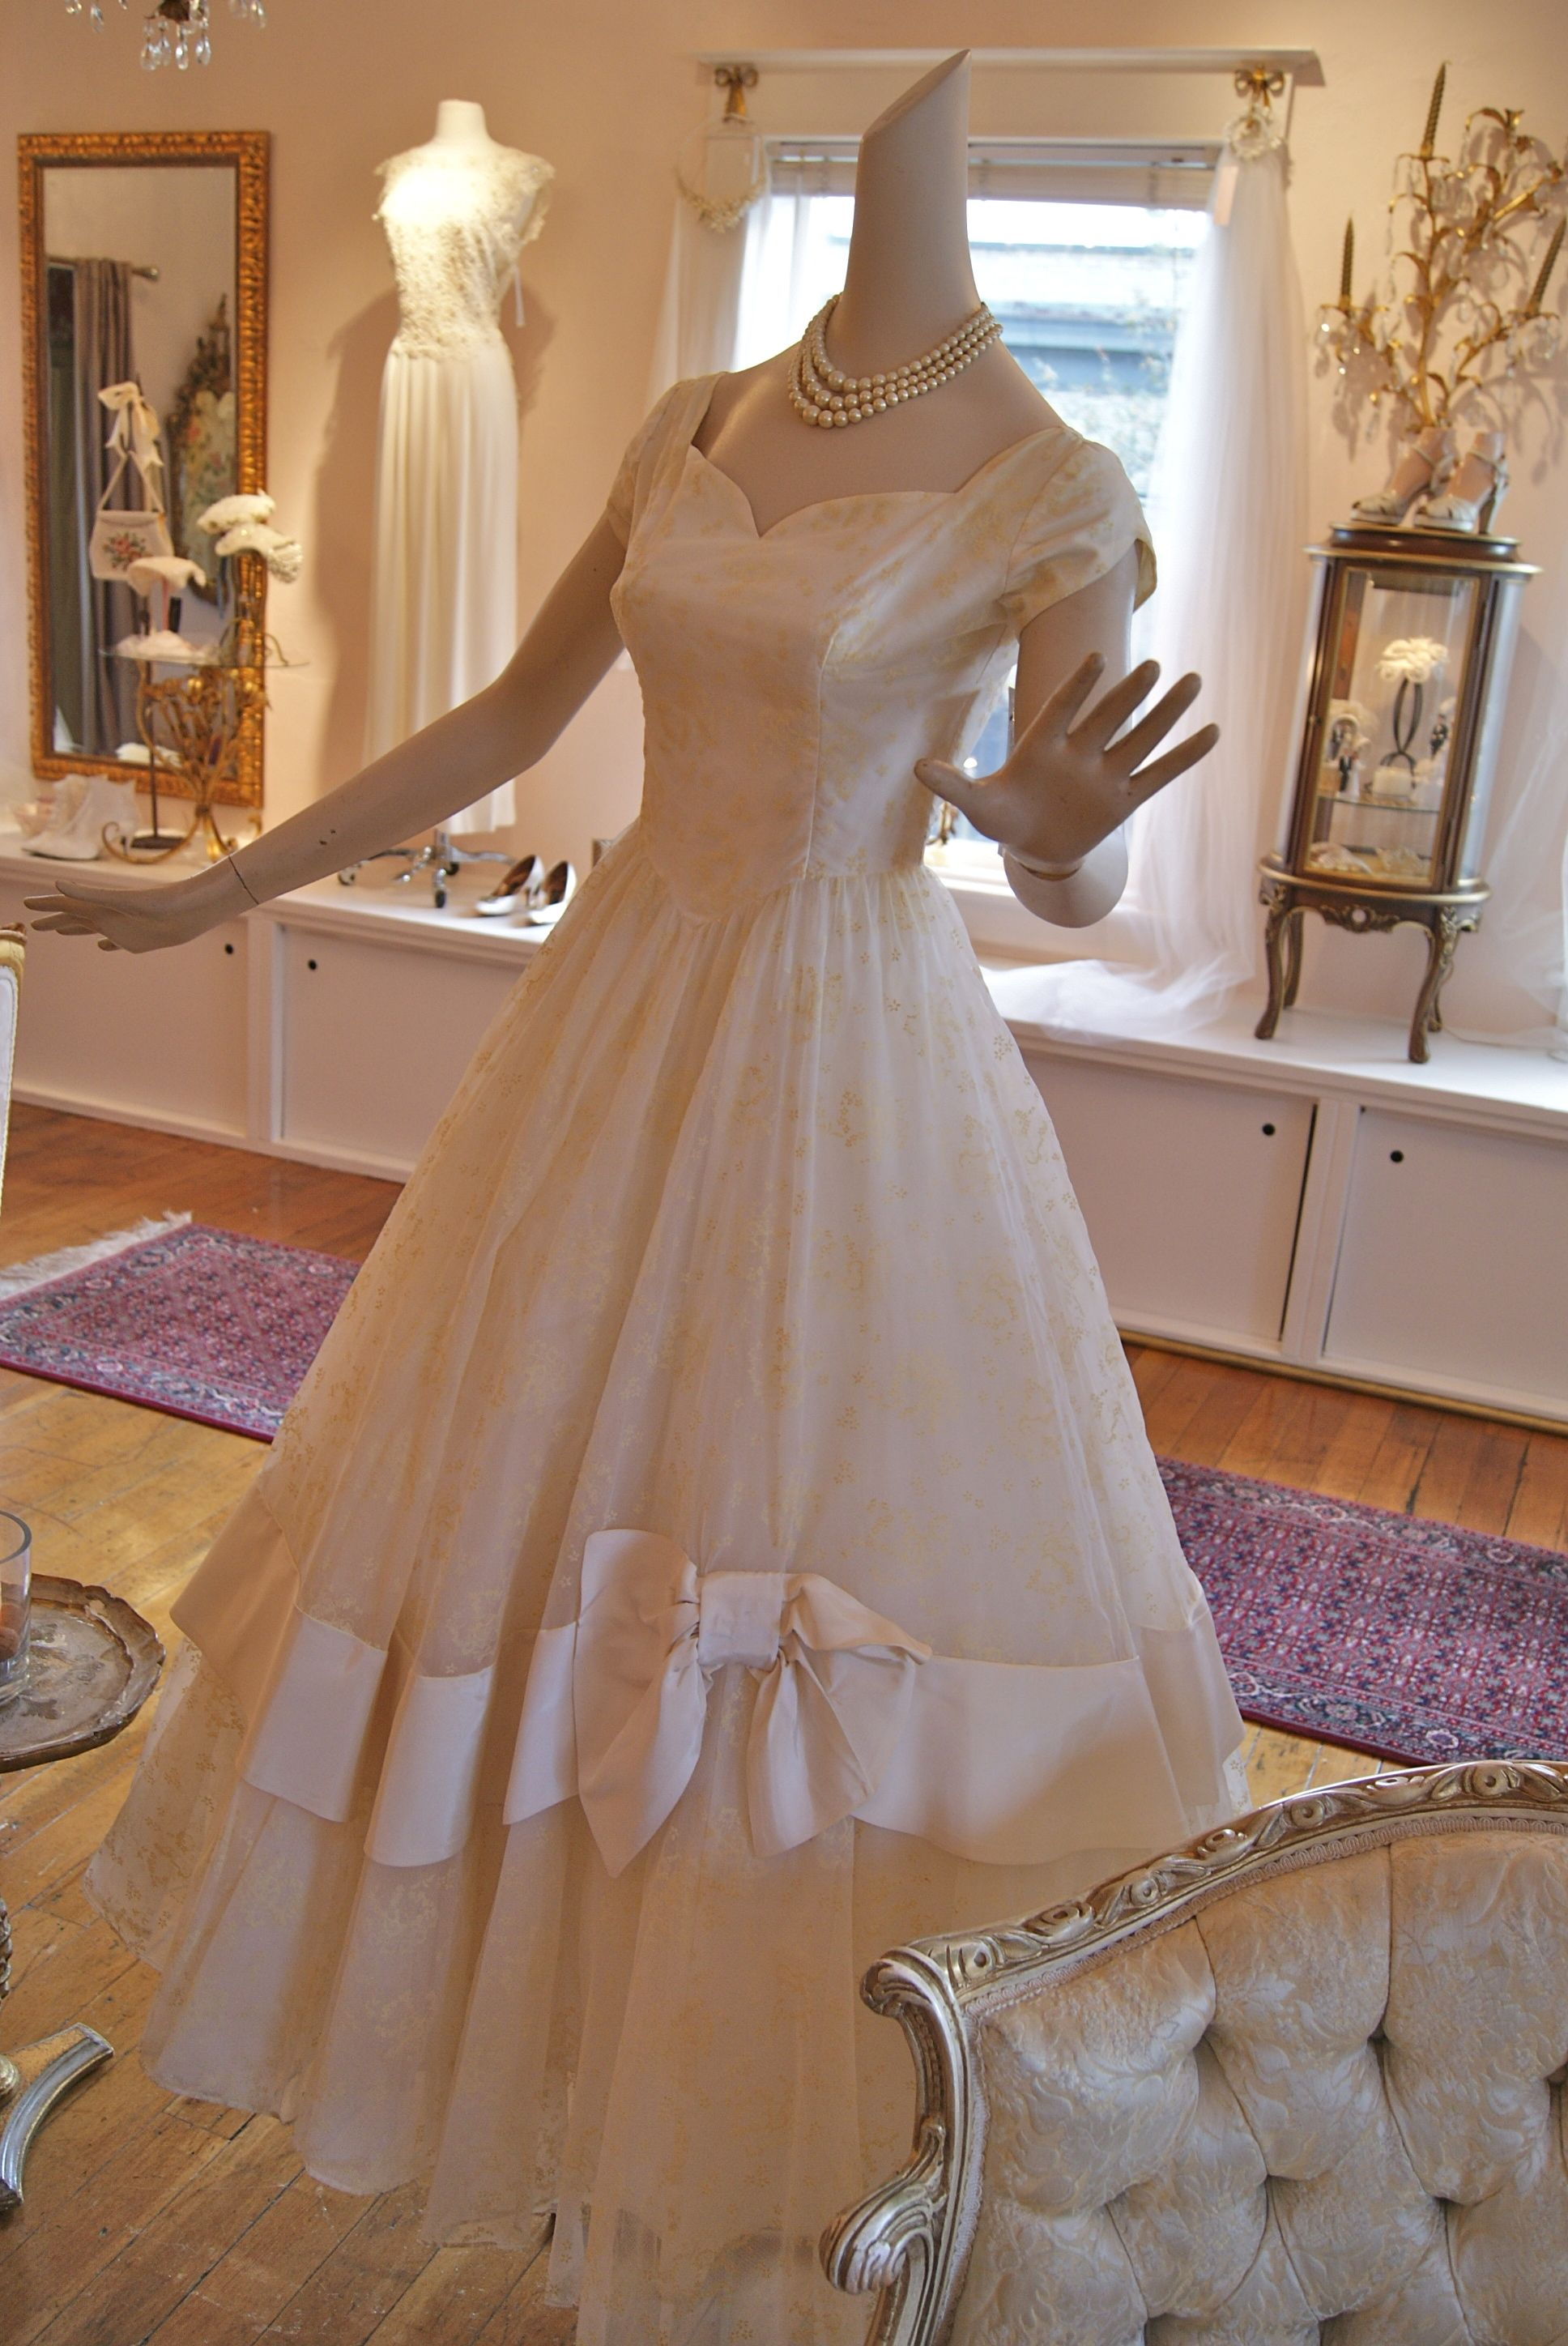 Vintage Bridal Salon In Portland Oregon 1950 S Wedding Dress Gorgeous Wedding Dress 1950s Wedding Dress Dresses